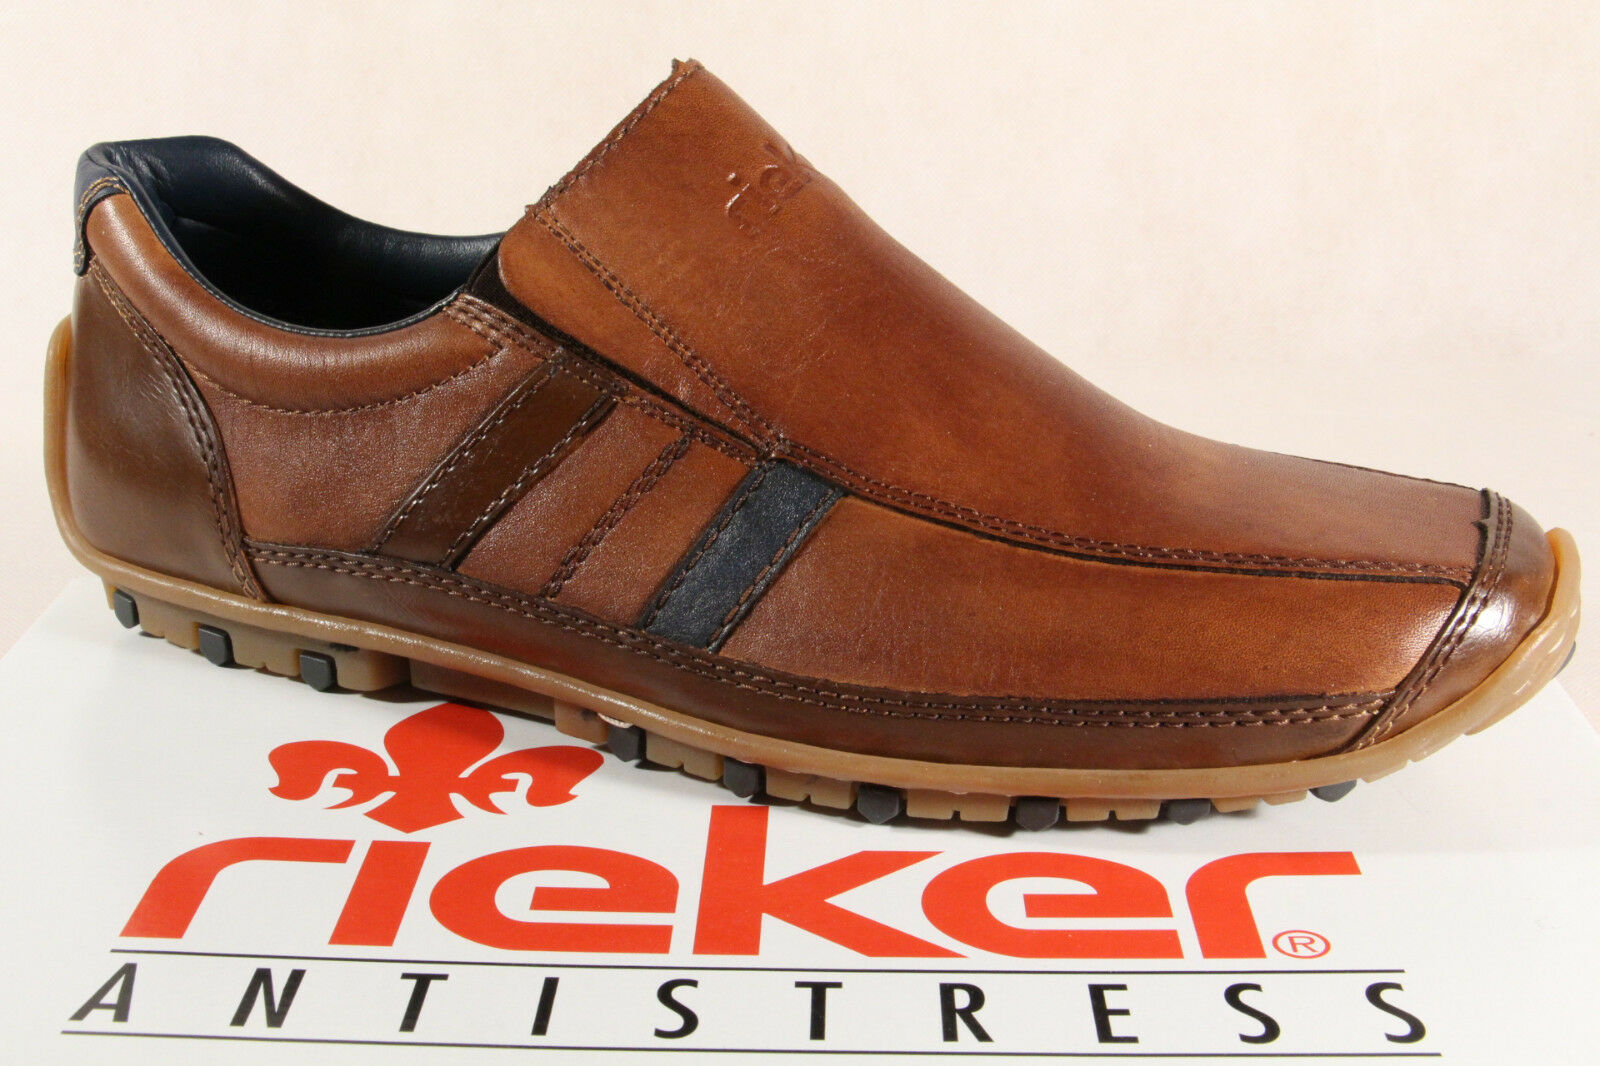 Rieker Men's Slippers Sneakers Low shoes 08972 Brown New